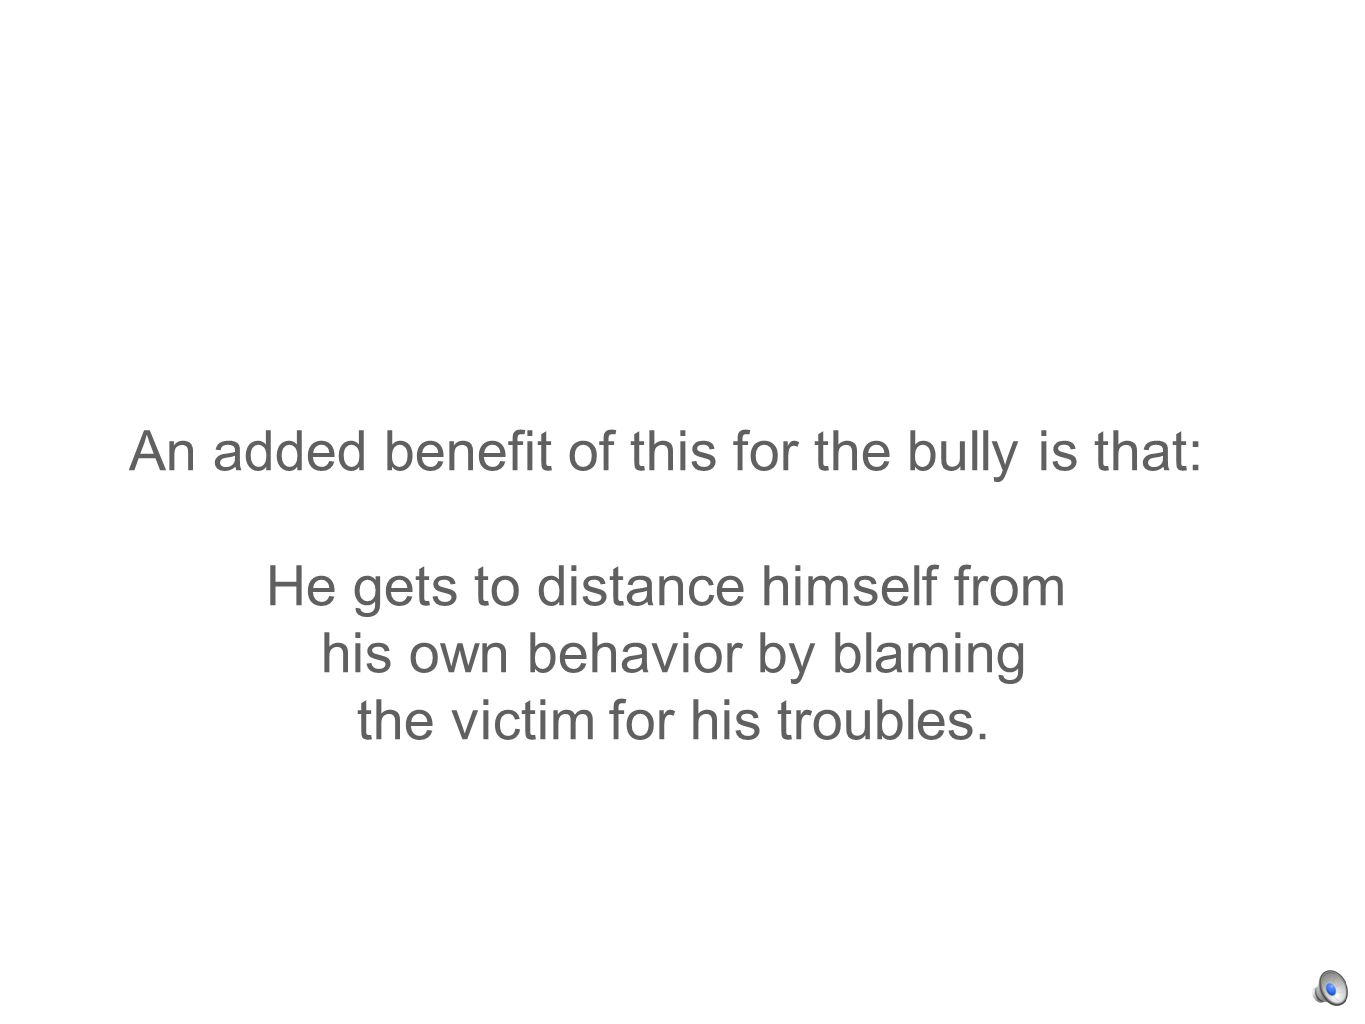 An added benefit of this for the bully is that: He gets to distance himself from his own behavior by blaming the victim for his troubles.